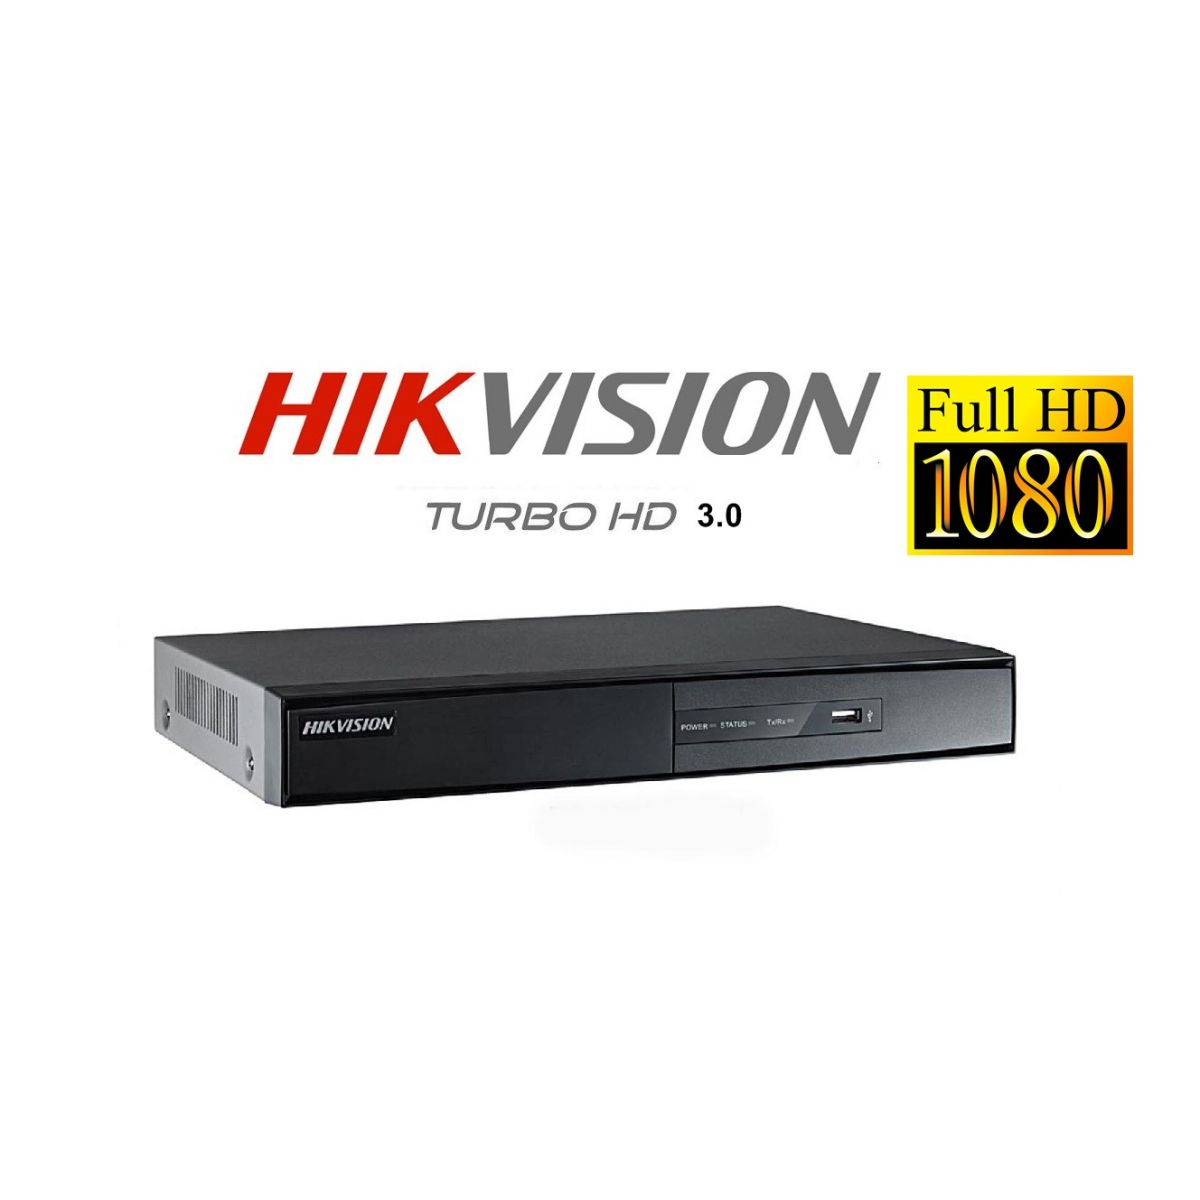 Dvr 16ch. Hikvision Turbo Hd 3.0 Pentaflex 5x1 Full Hd 1080p